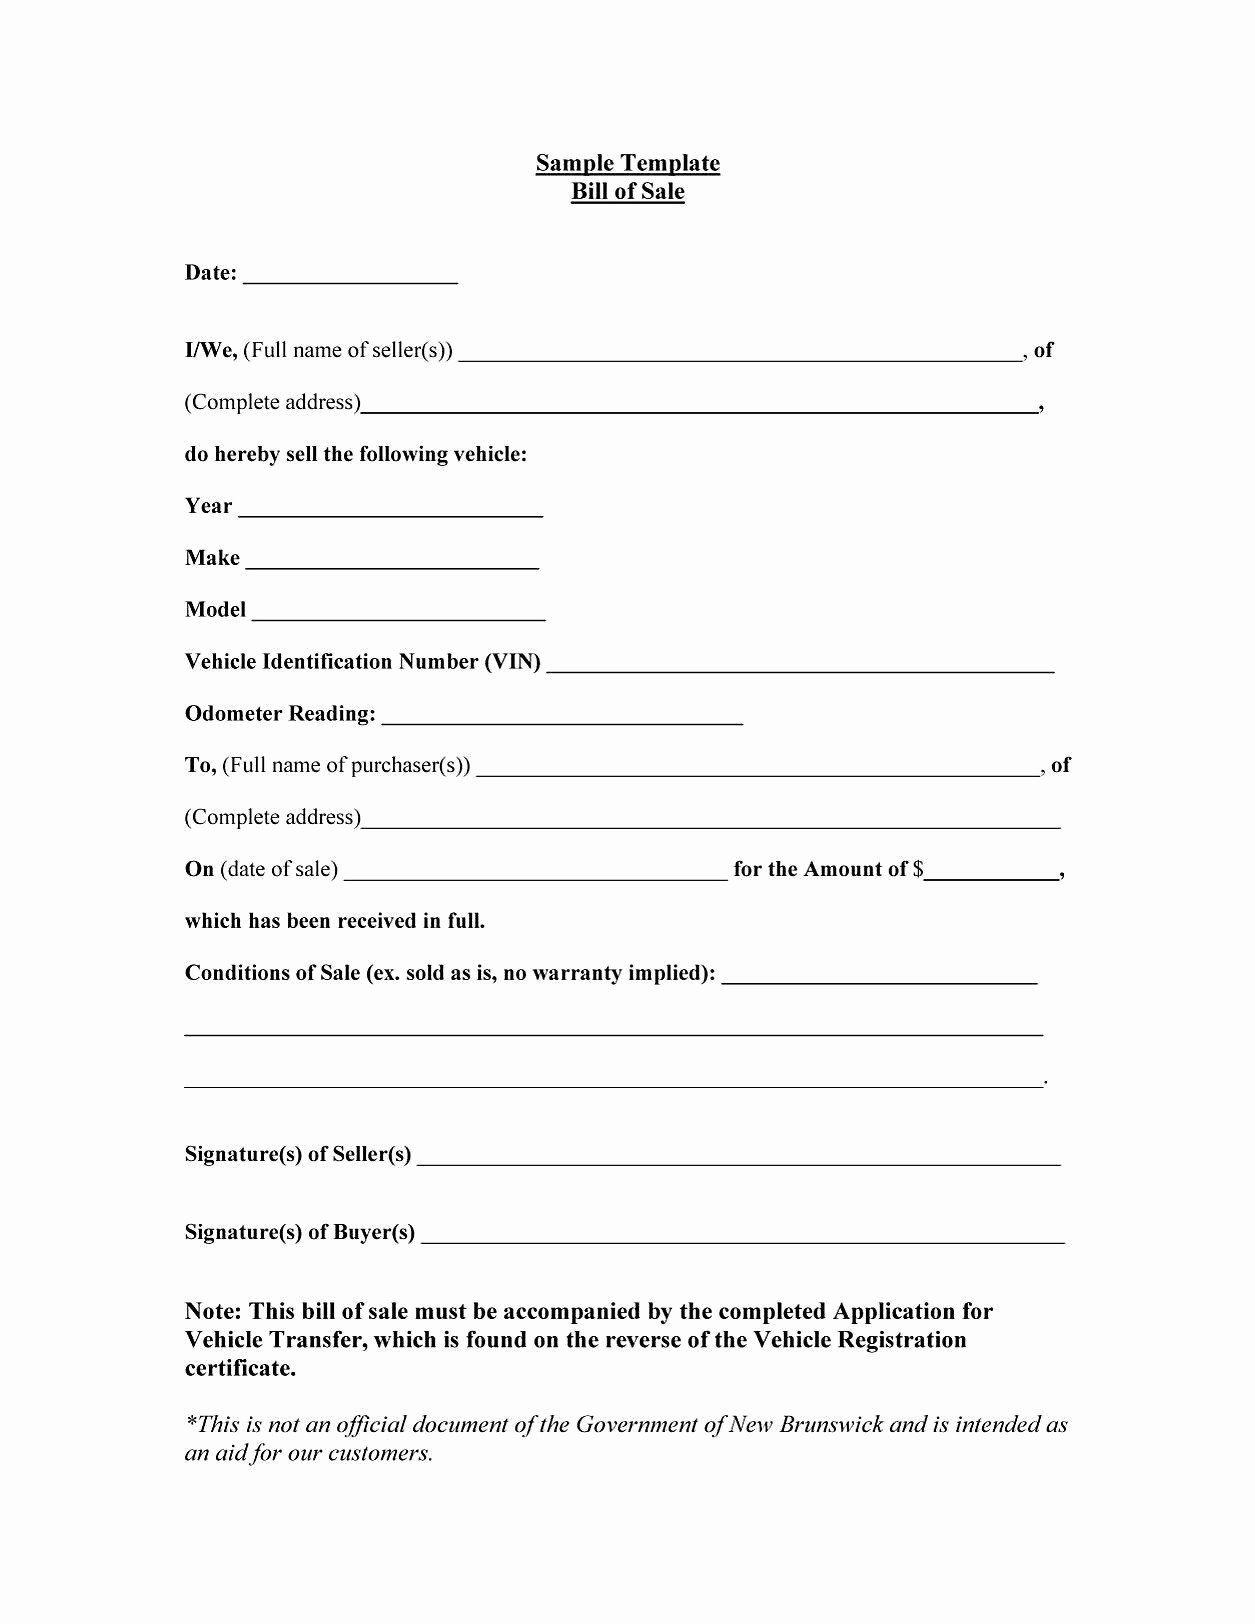 Bill Of Sale Blank Document Luxury Bill Sale Sample Document Mughals